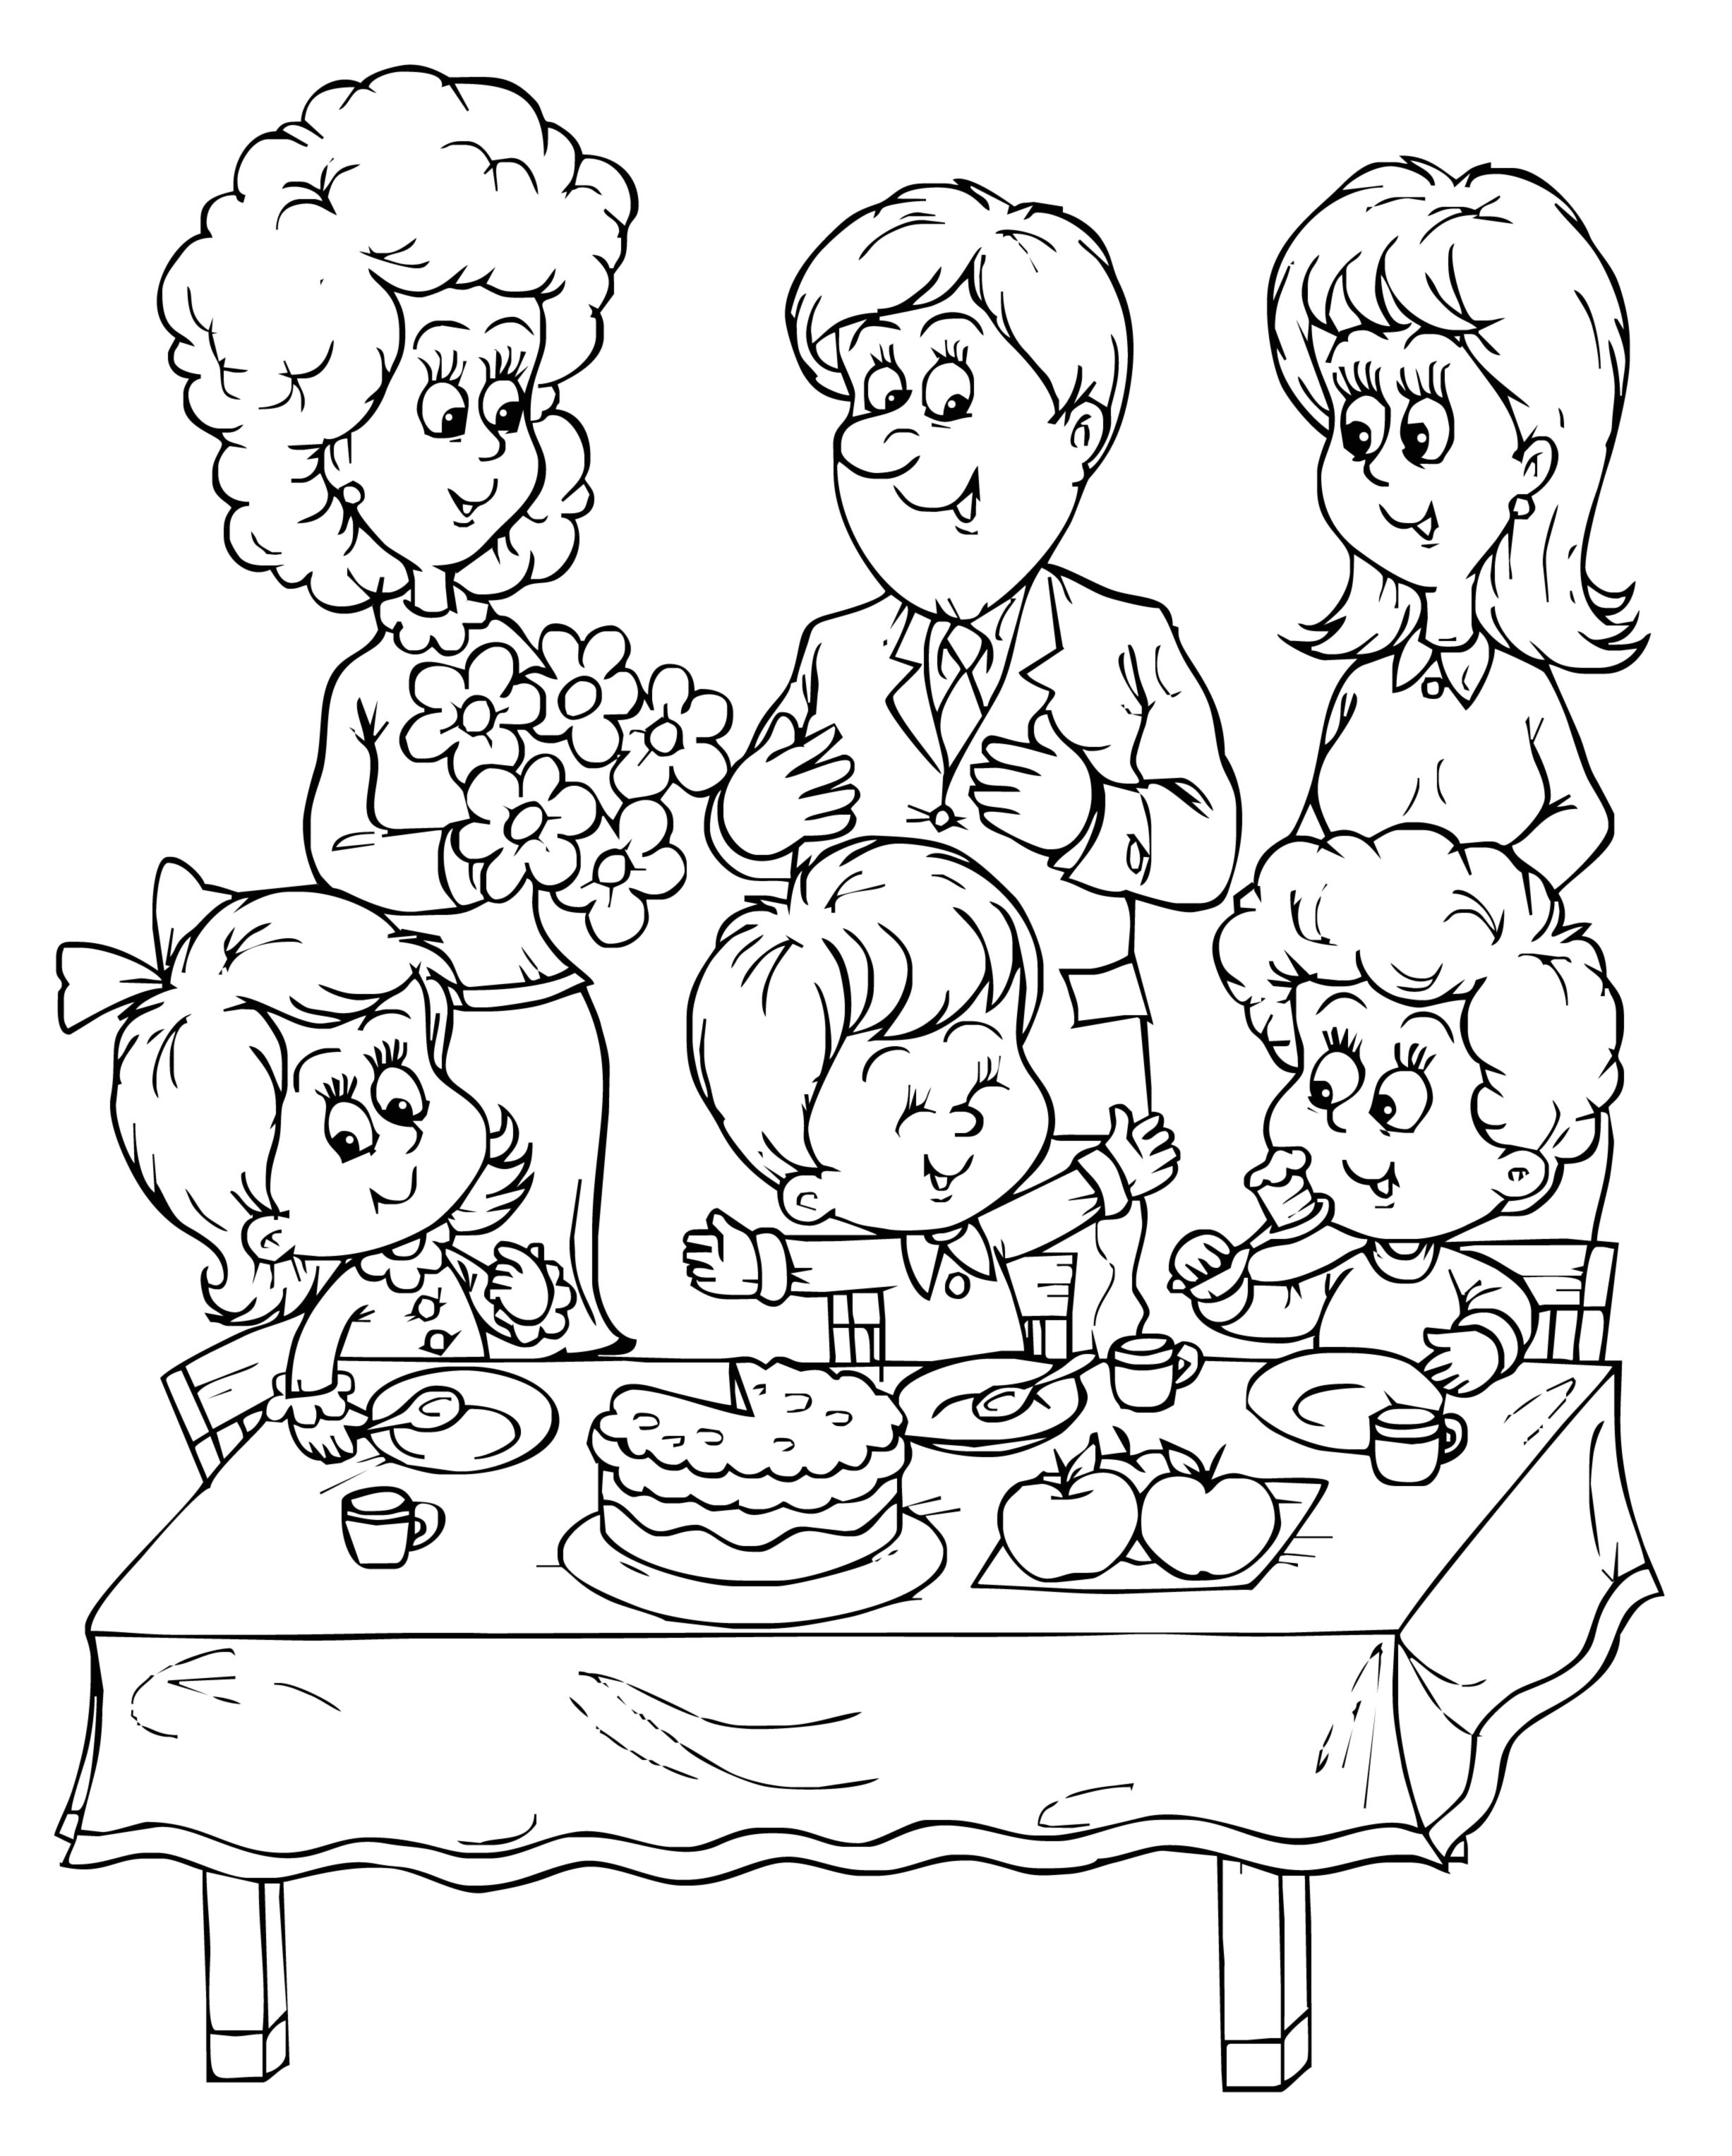 birthday party coloring pages - Bing Images | Семья и дети ...